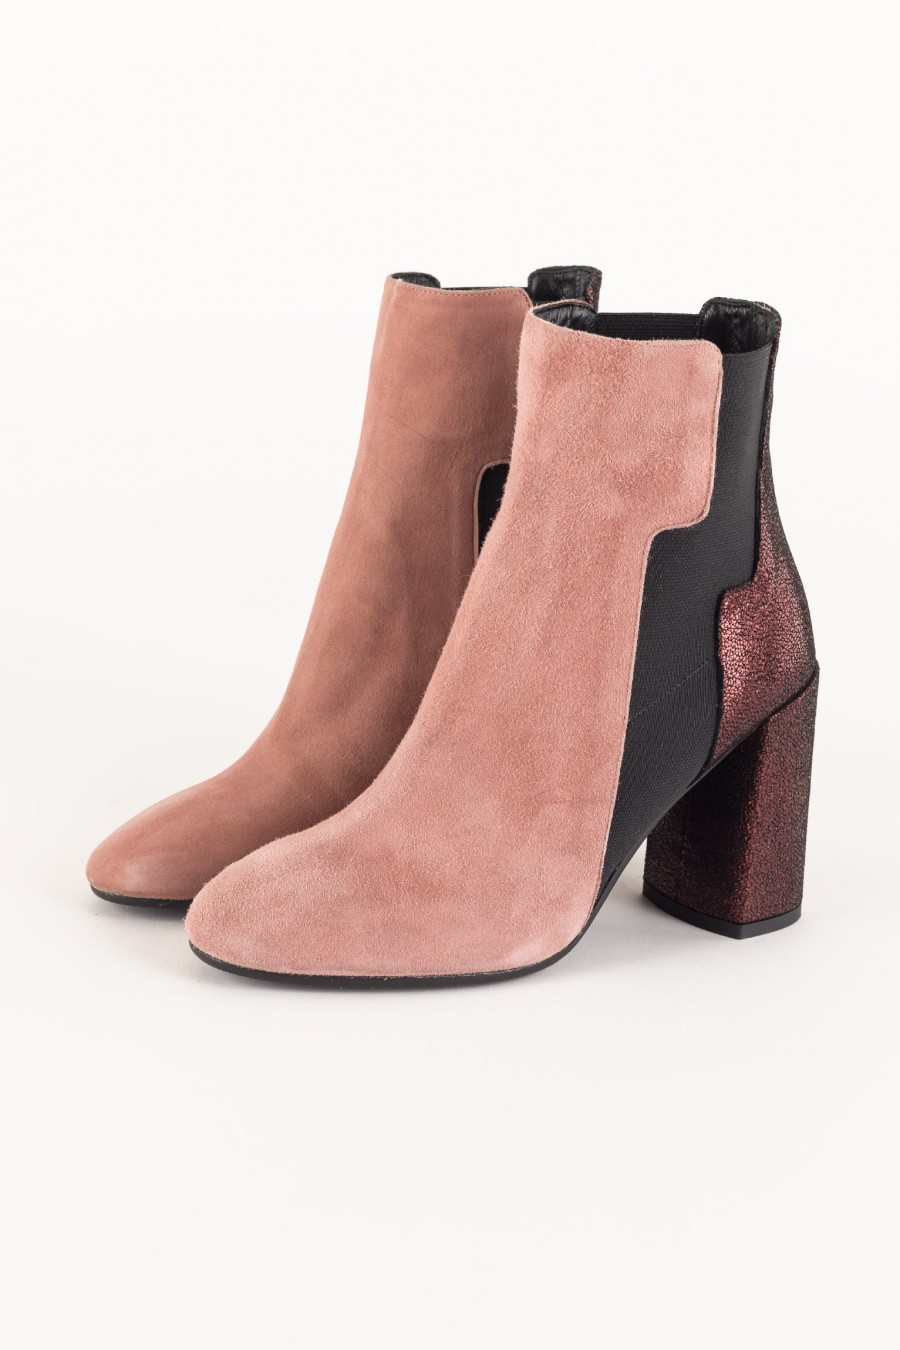 Pink suede leather ankle boots